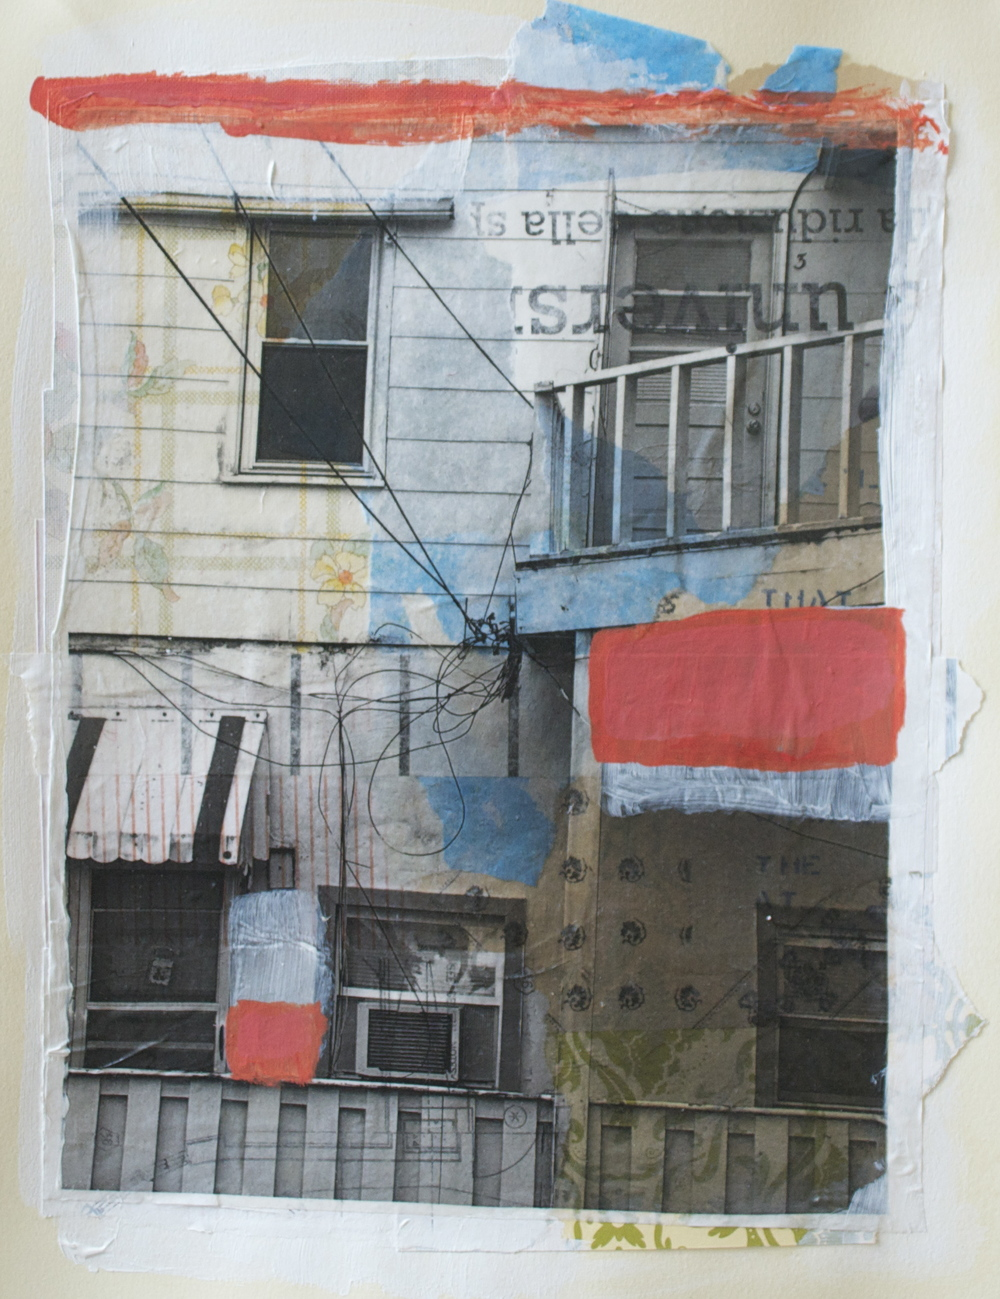 "Living In Small Places In Small Cities,  2013, Collage, Acrylic, Gel Transfer on Paper, 14"" x 11"" inches"